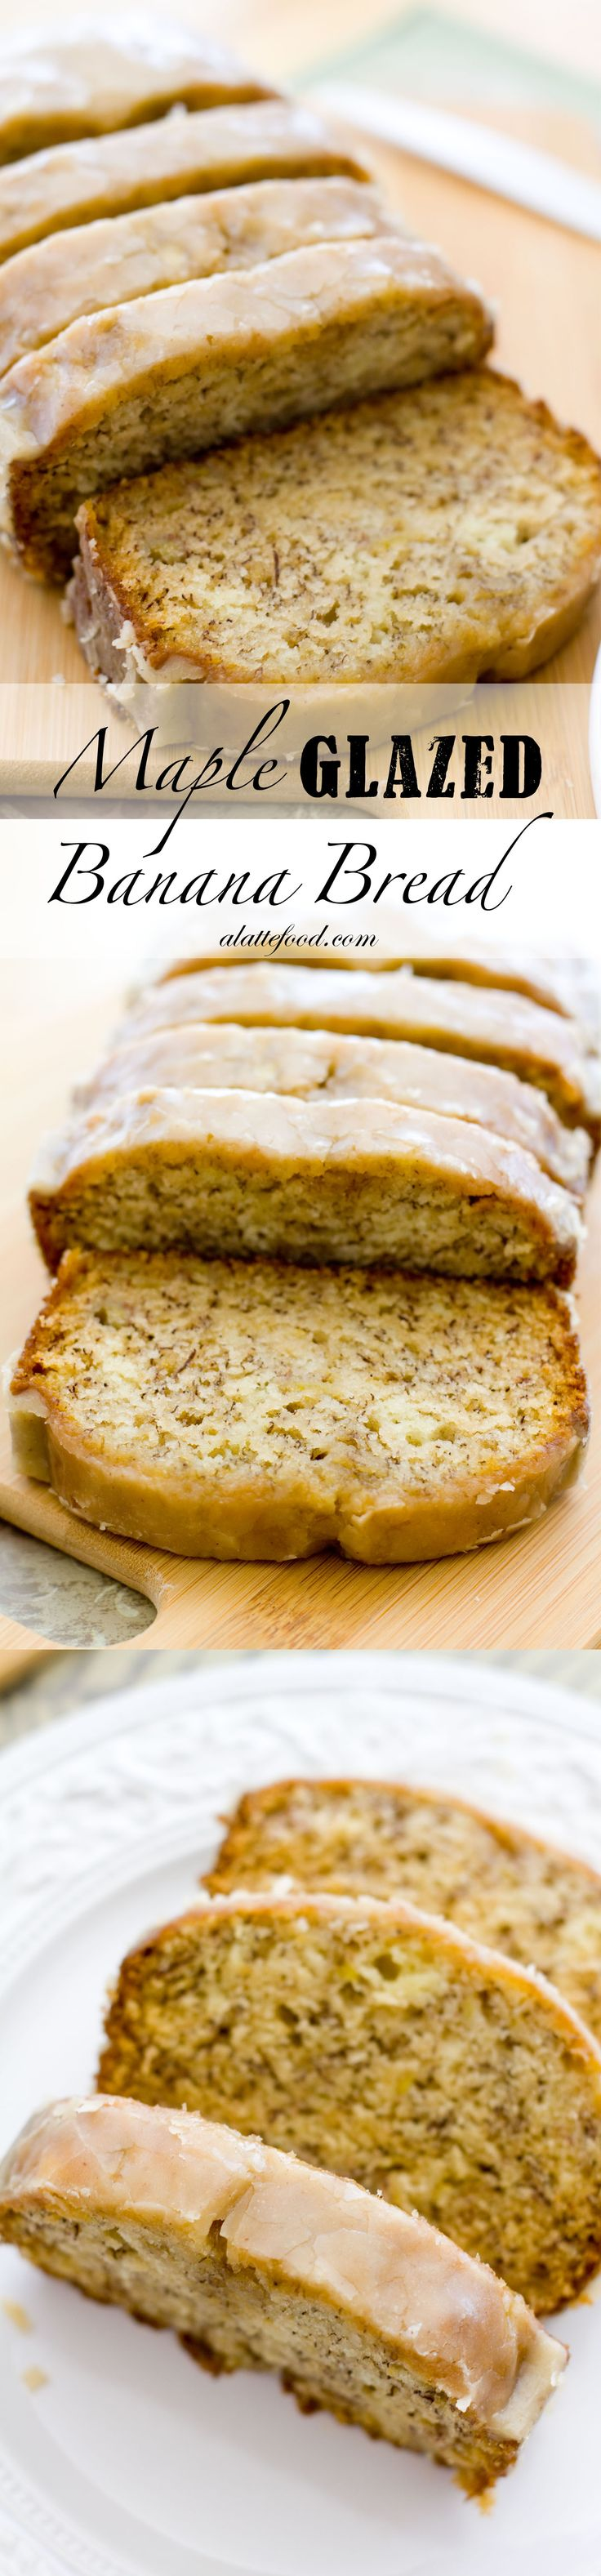 Maple Glazed Banana Bread   Mom's banana bread topped with a maple glaze that's to die for!